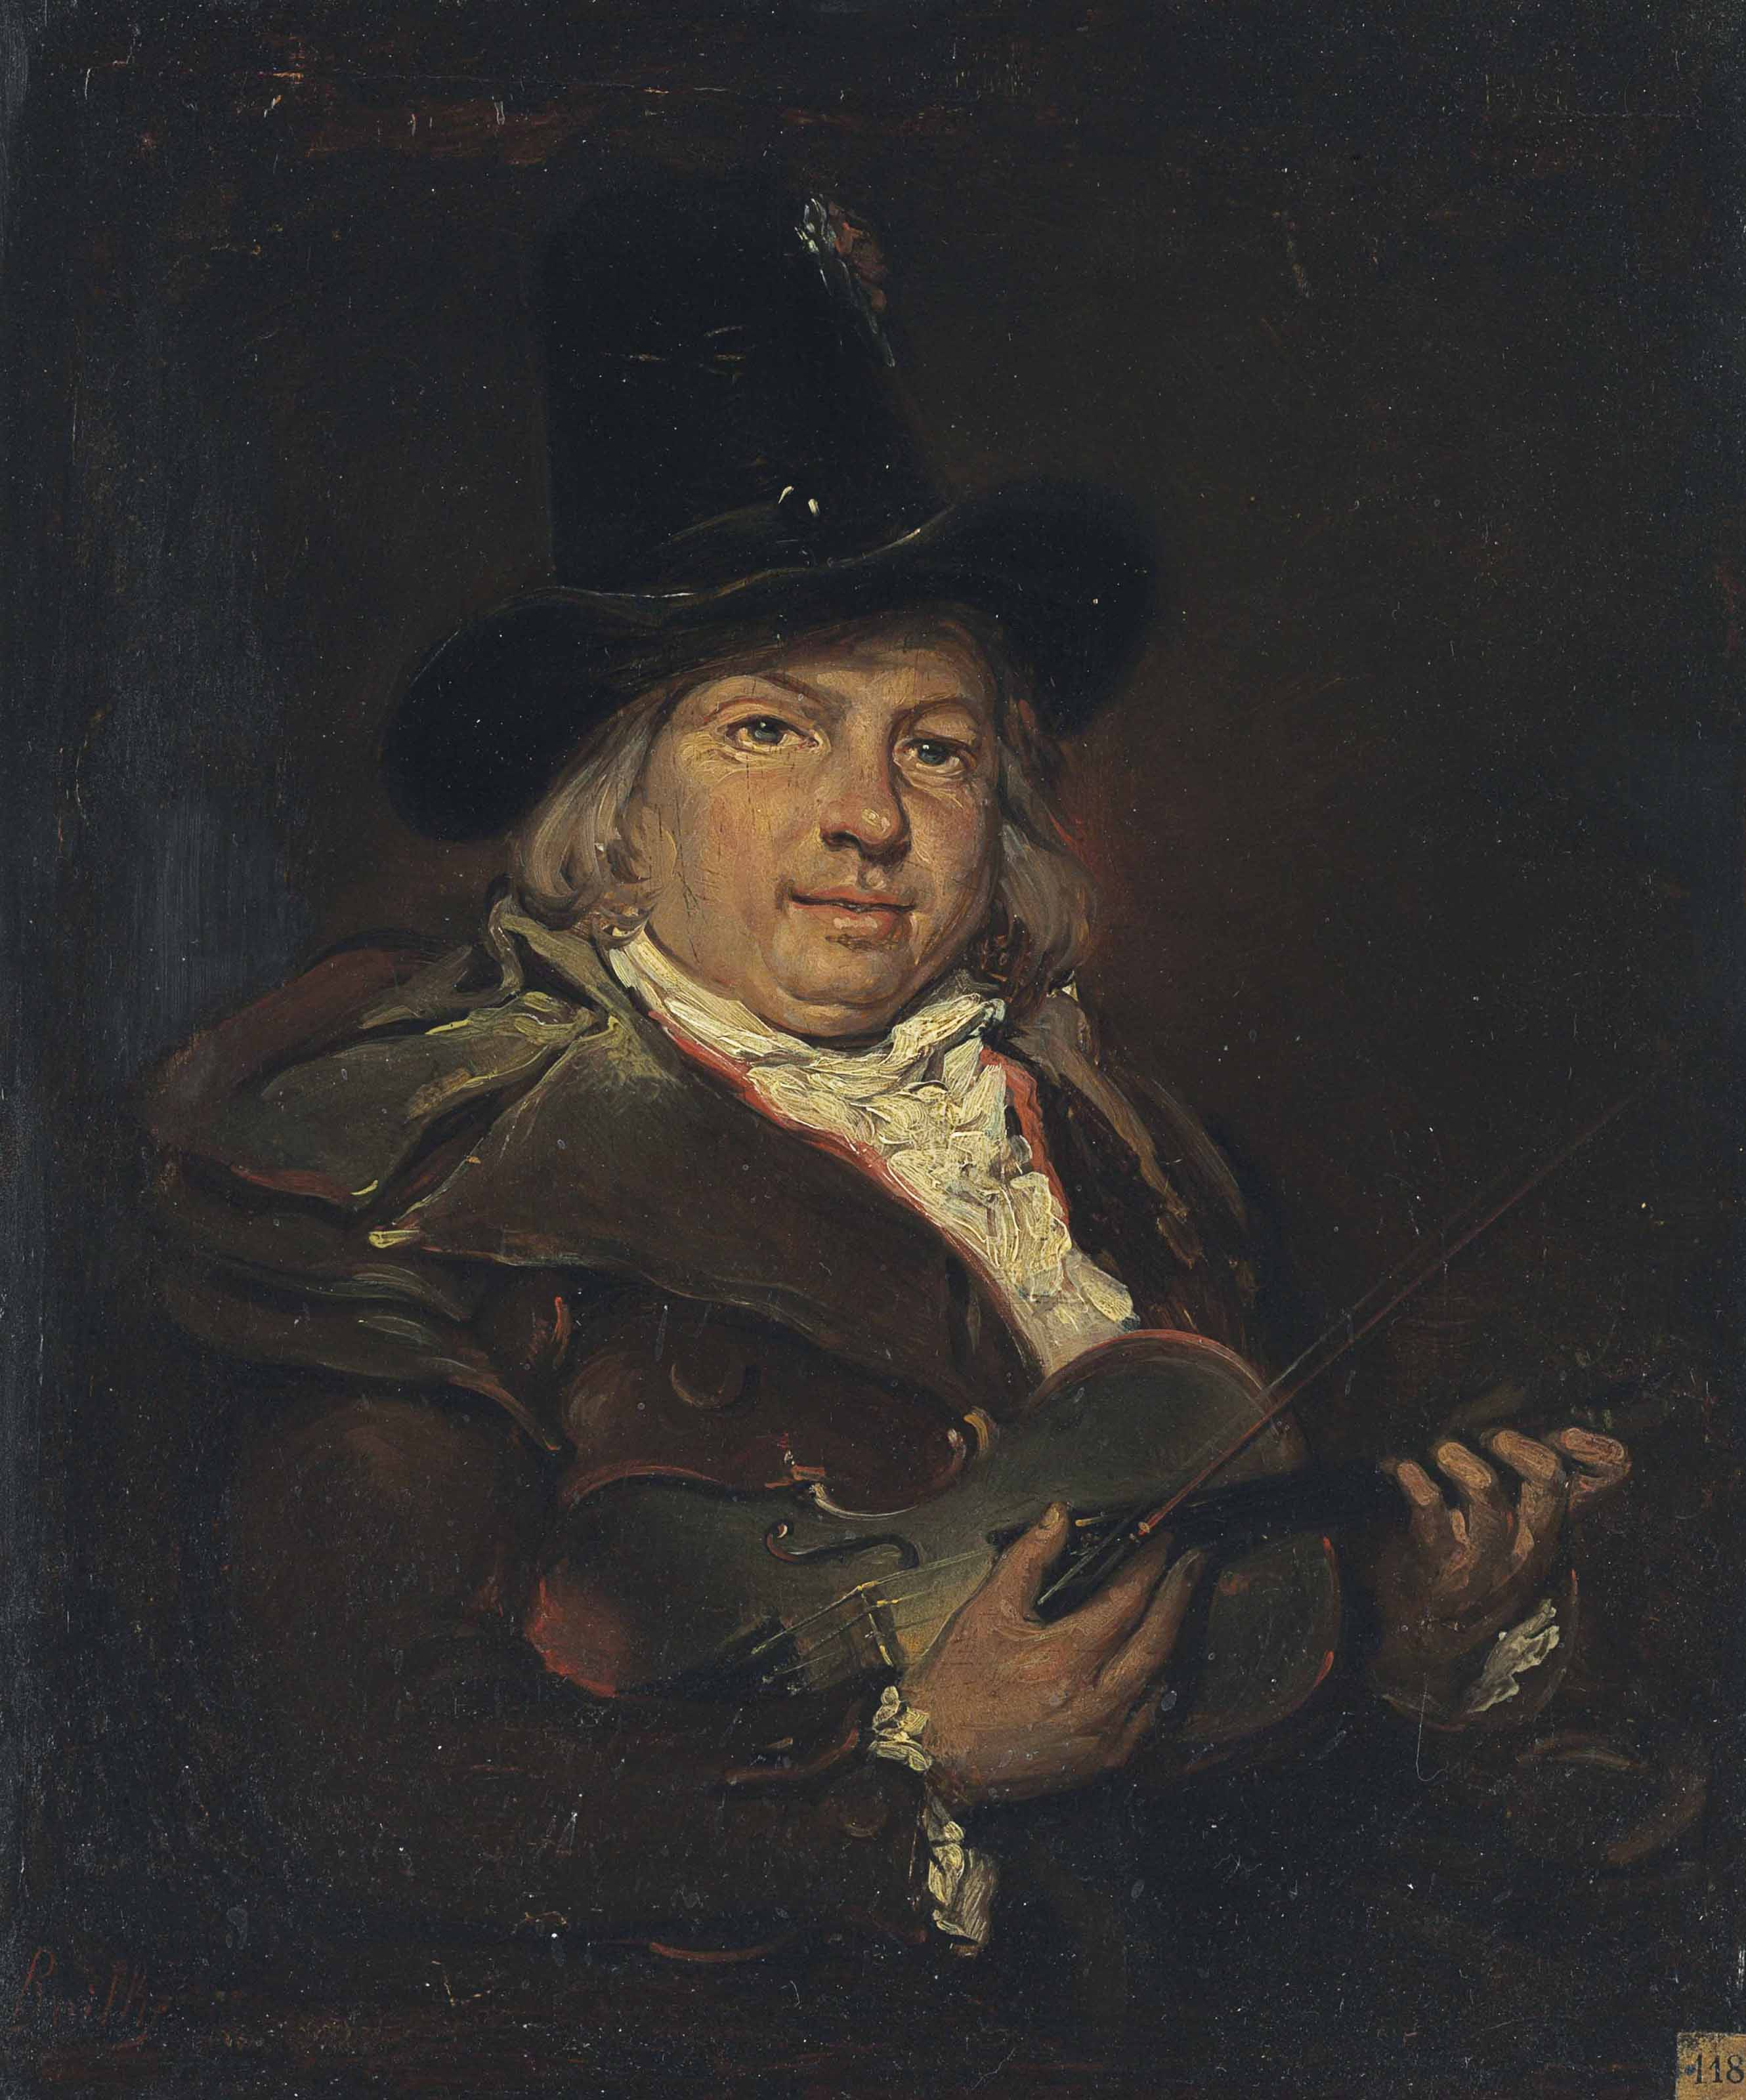 Attributed to Julien-Léopold B